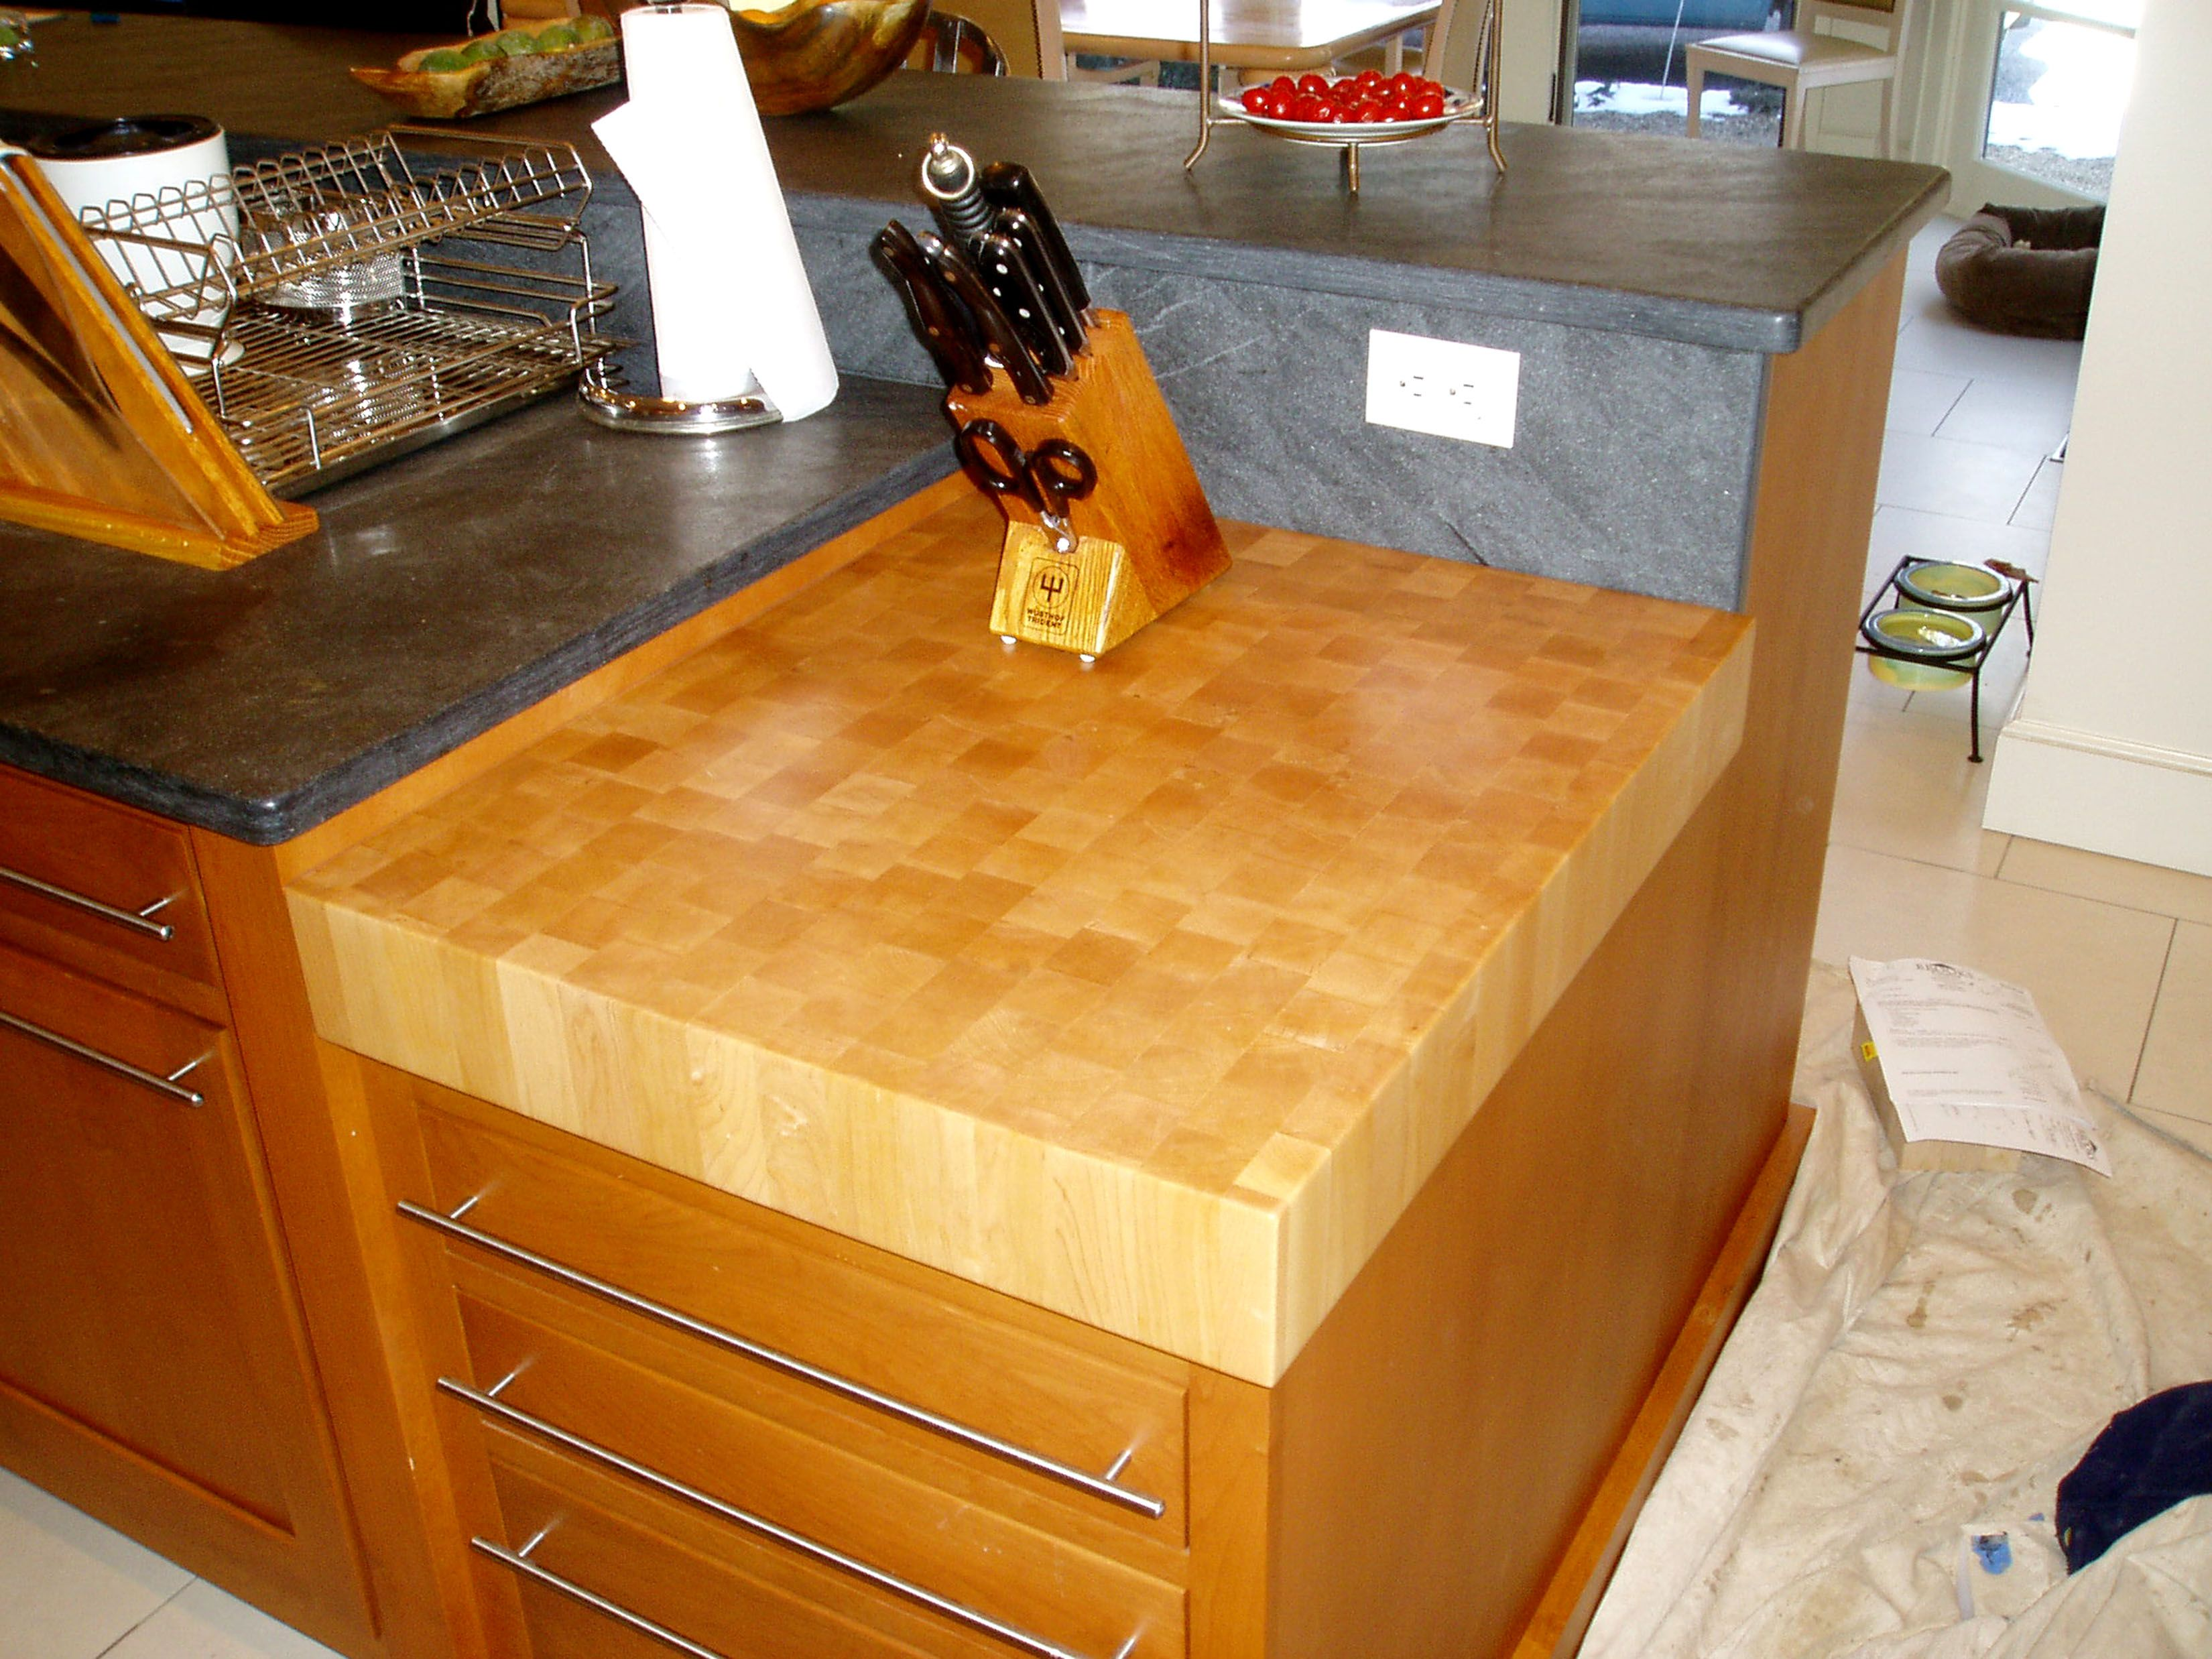 custom butcher block countertops kitchen cutting table REALLY WANT a butcher block counter top doubling as a cutting board in kitchen